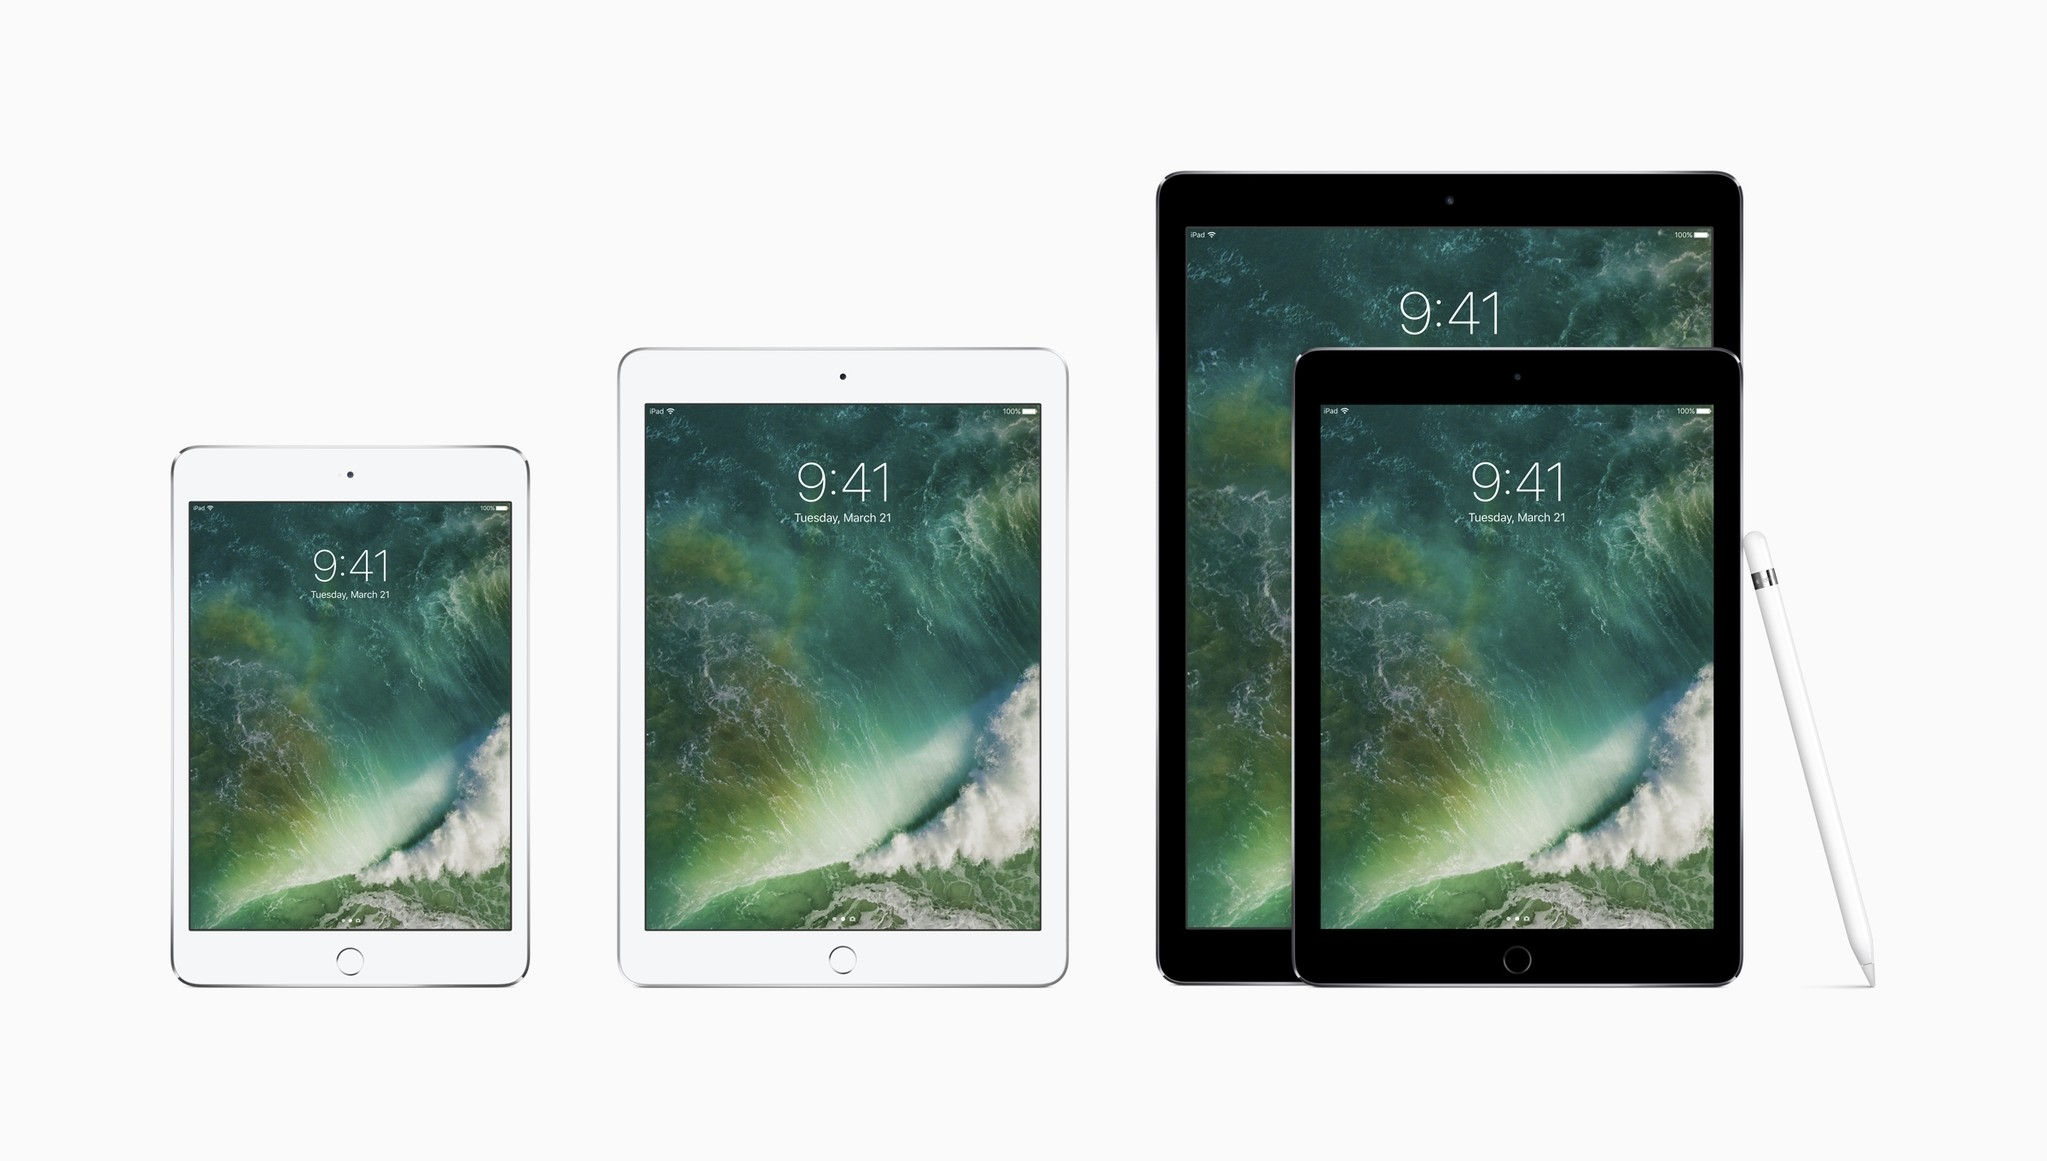 This photo provided by Apple shows the family of iPads, from left, the iPad mini 4, the new iPad, the 9.7-inch iPad Pro and the 12.9-inch one, along with the Apple Pencil. (Apple via AP)